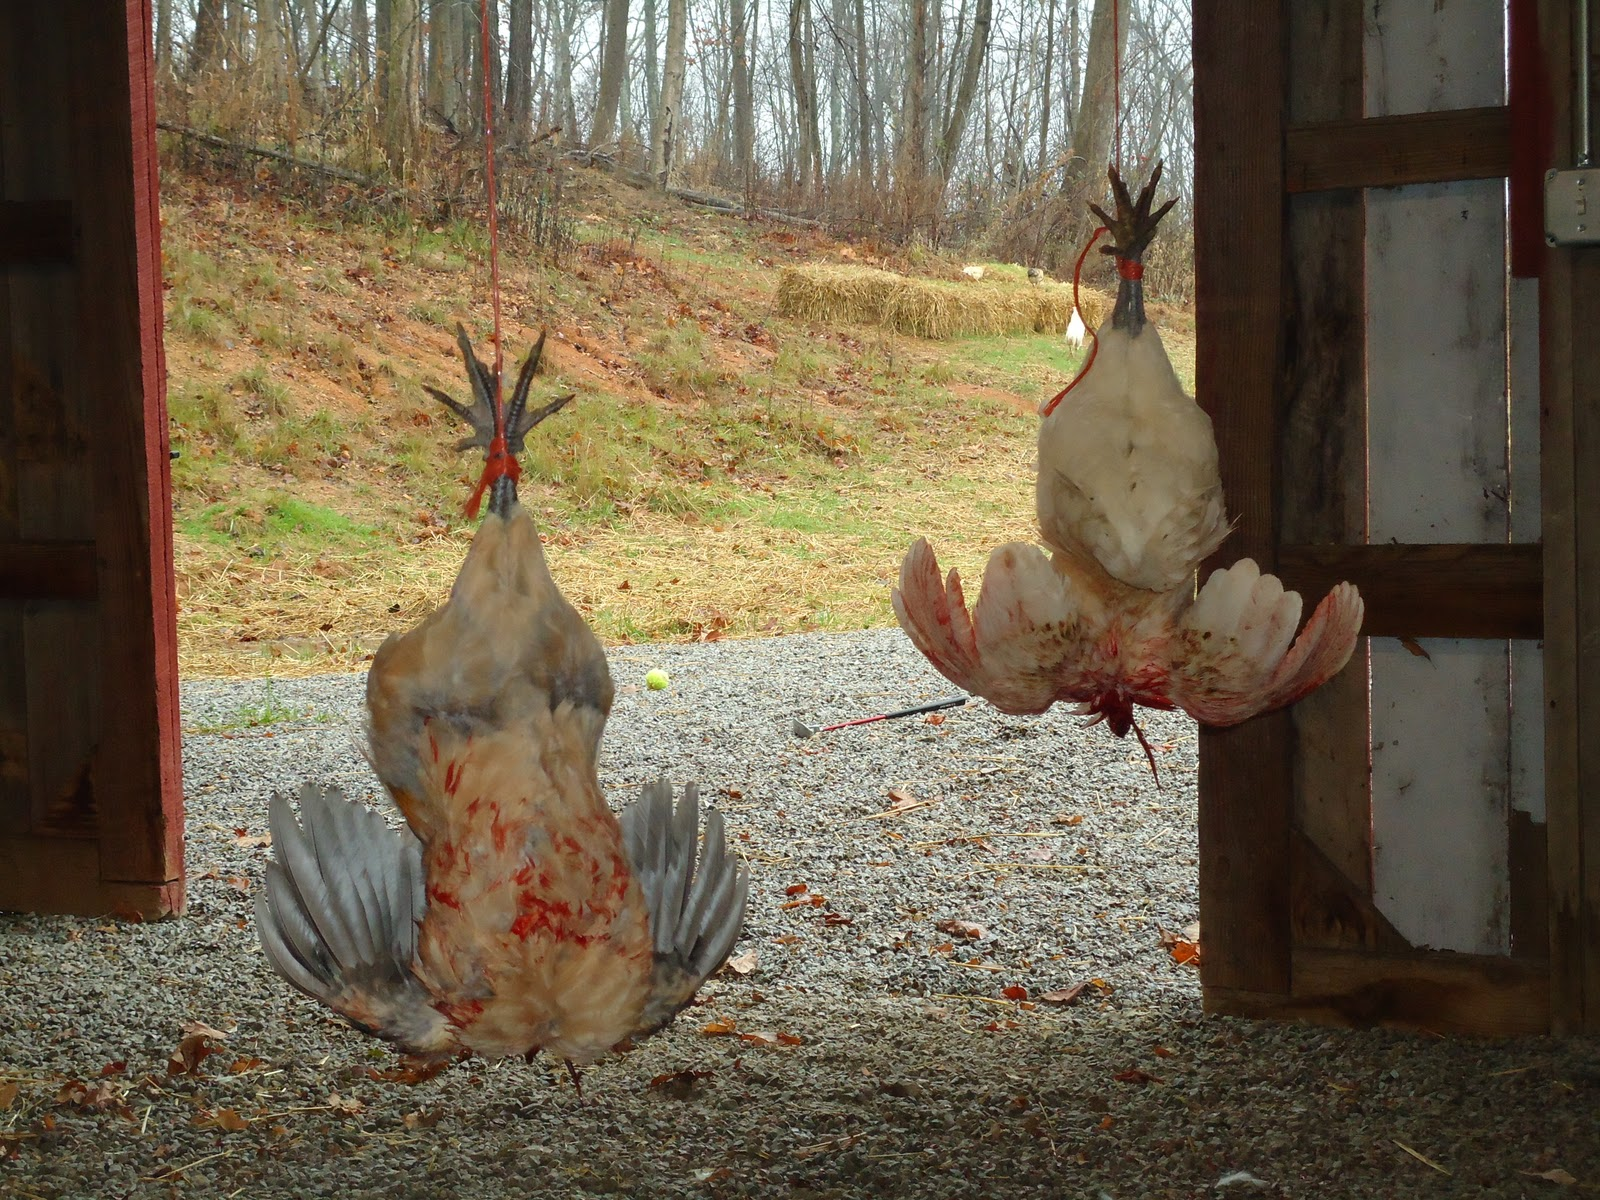 Kfc Chickens Without Heads - photo#29